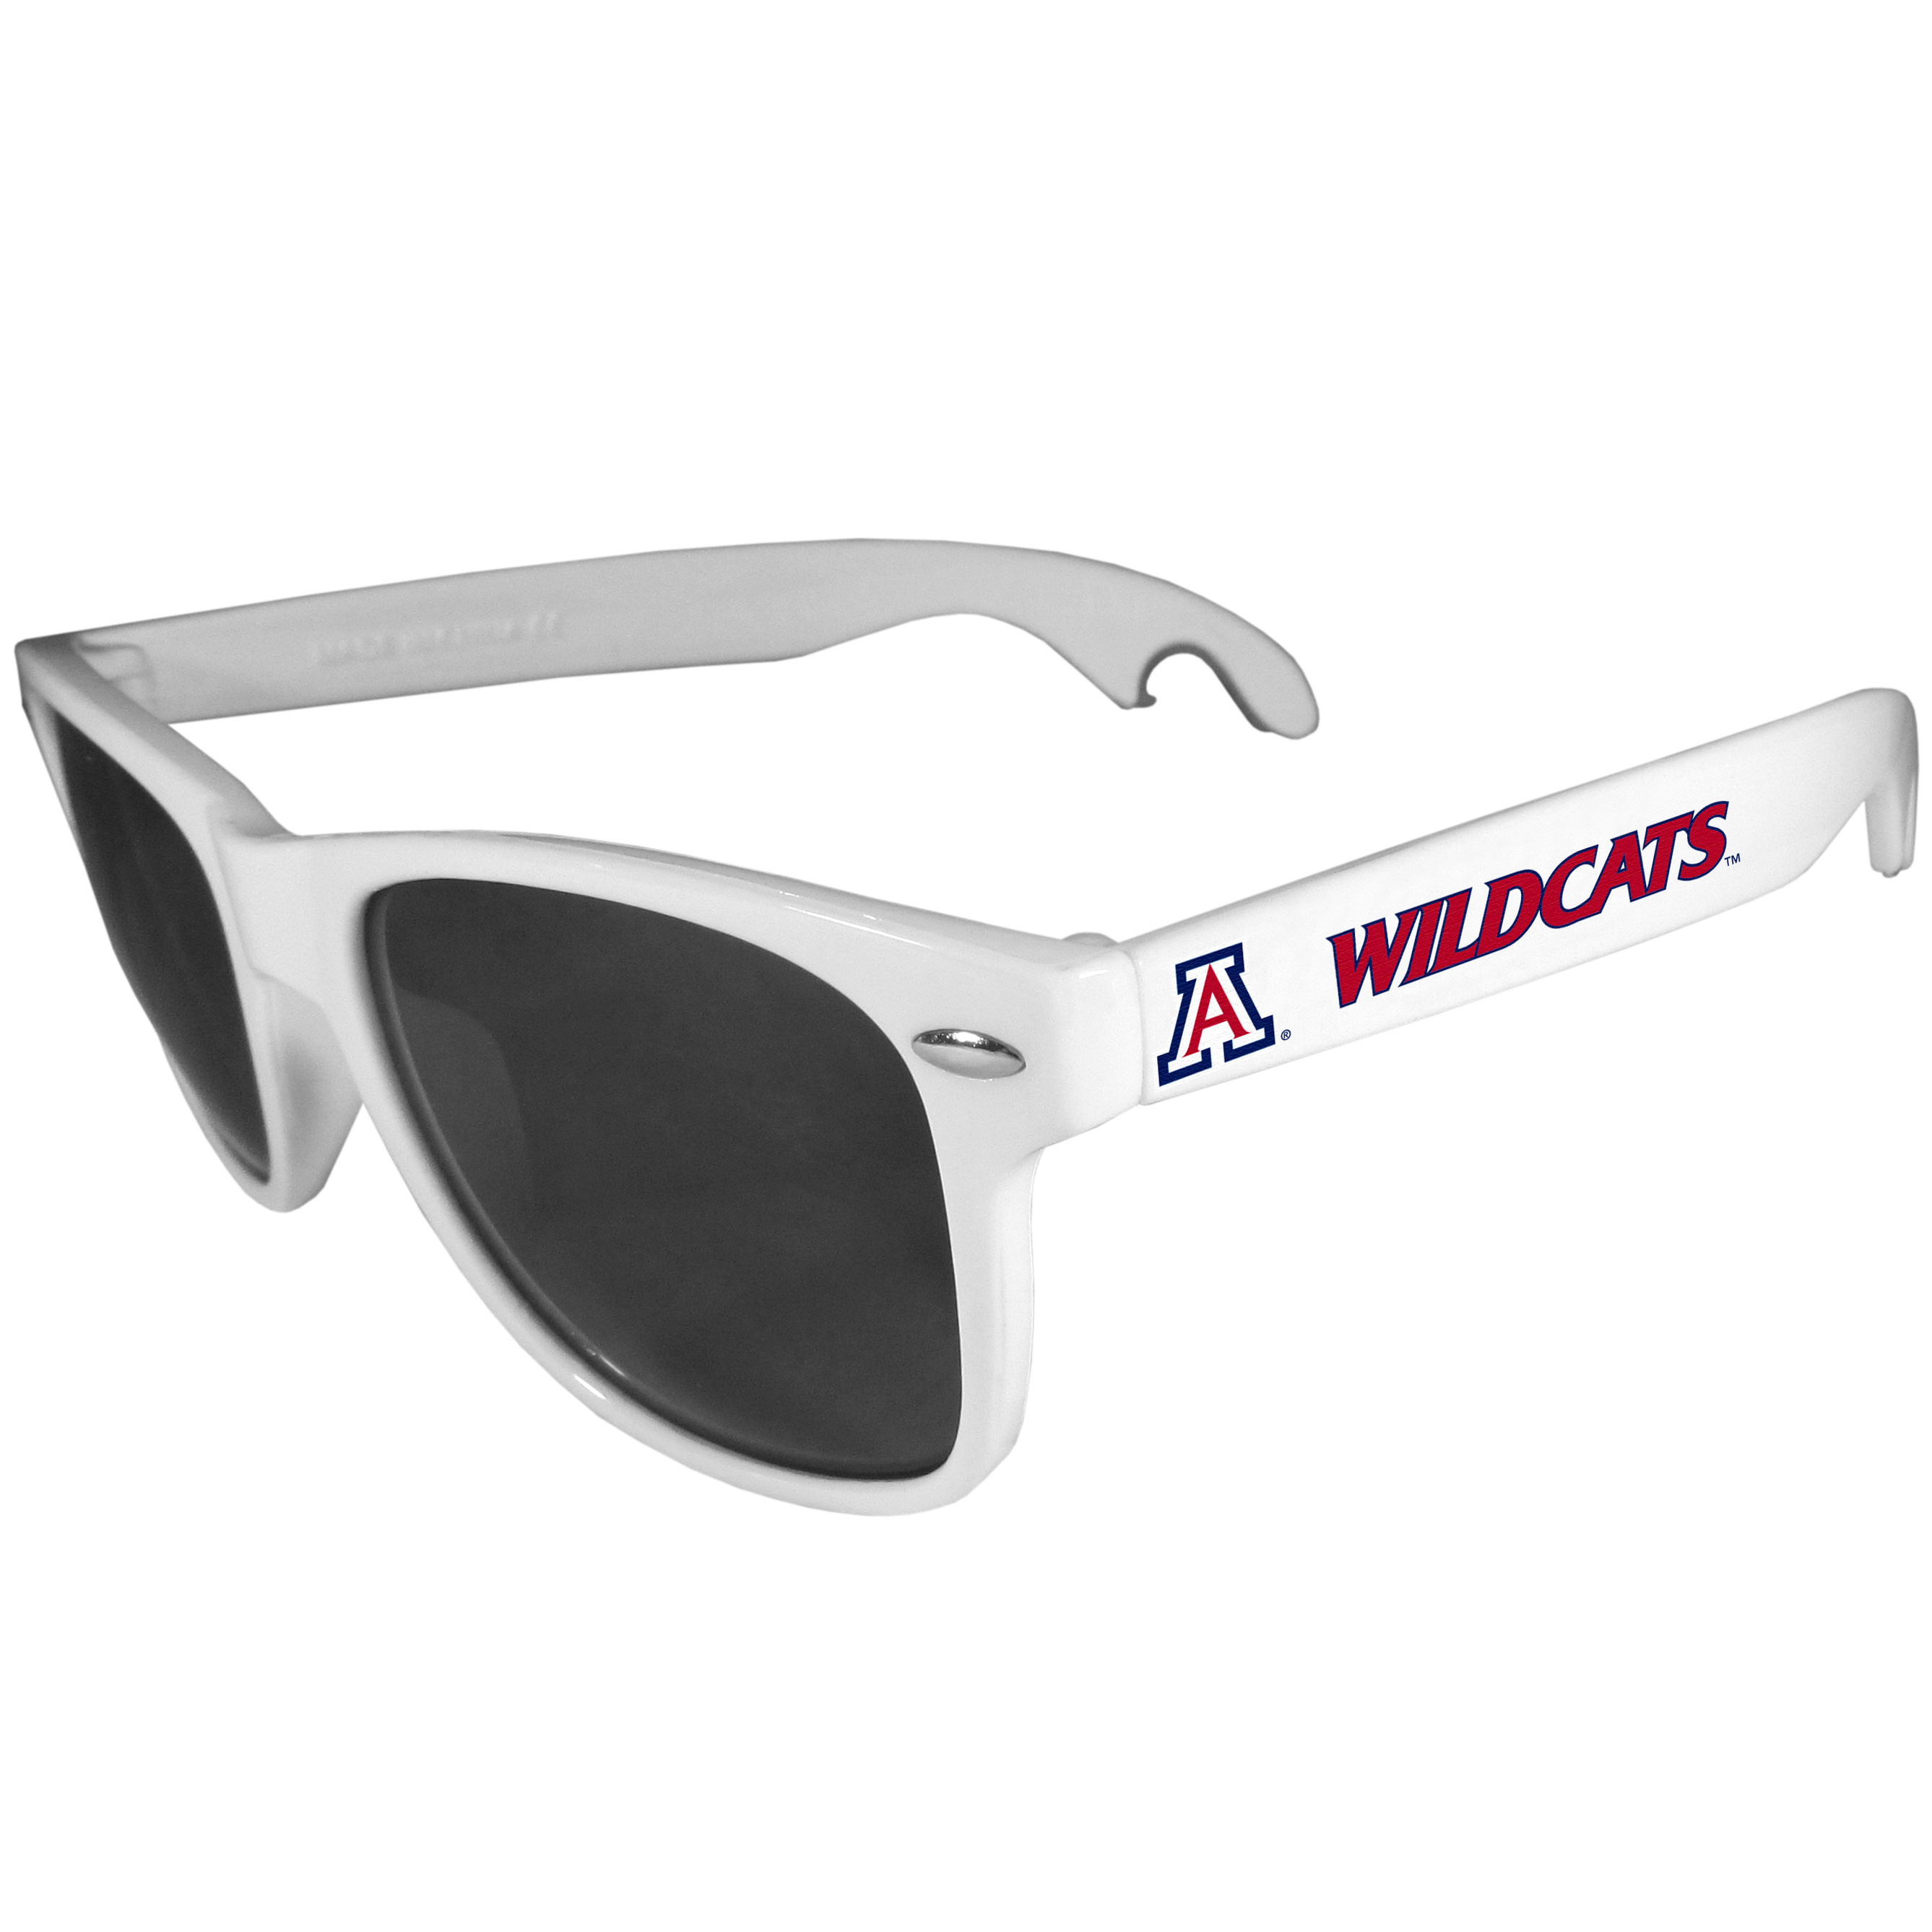 Arizona Wildcats Beachfarer Bottle Opener Sunglasses, White - Seriously, these sunglasses open bottles! Keep the party going with these amazing Arizona Wildcats bottle opener sunglasses. The stylish retro frames feature team designs on the arms and functional bottle openers on the end of the arms. Whether you are at the beach or having a backyard BBQ on game day, these shades will keep your eyes protected with 100% UVA/UVB protection and keep you hydrated with the handy bottle opener arms.